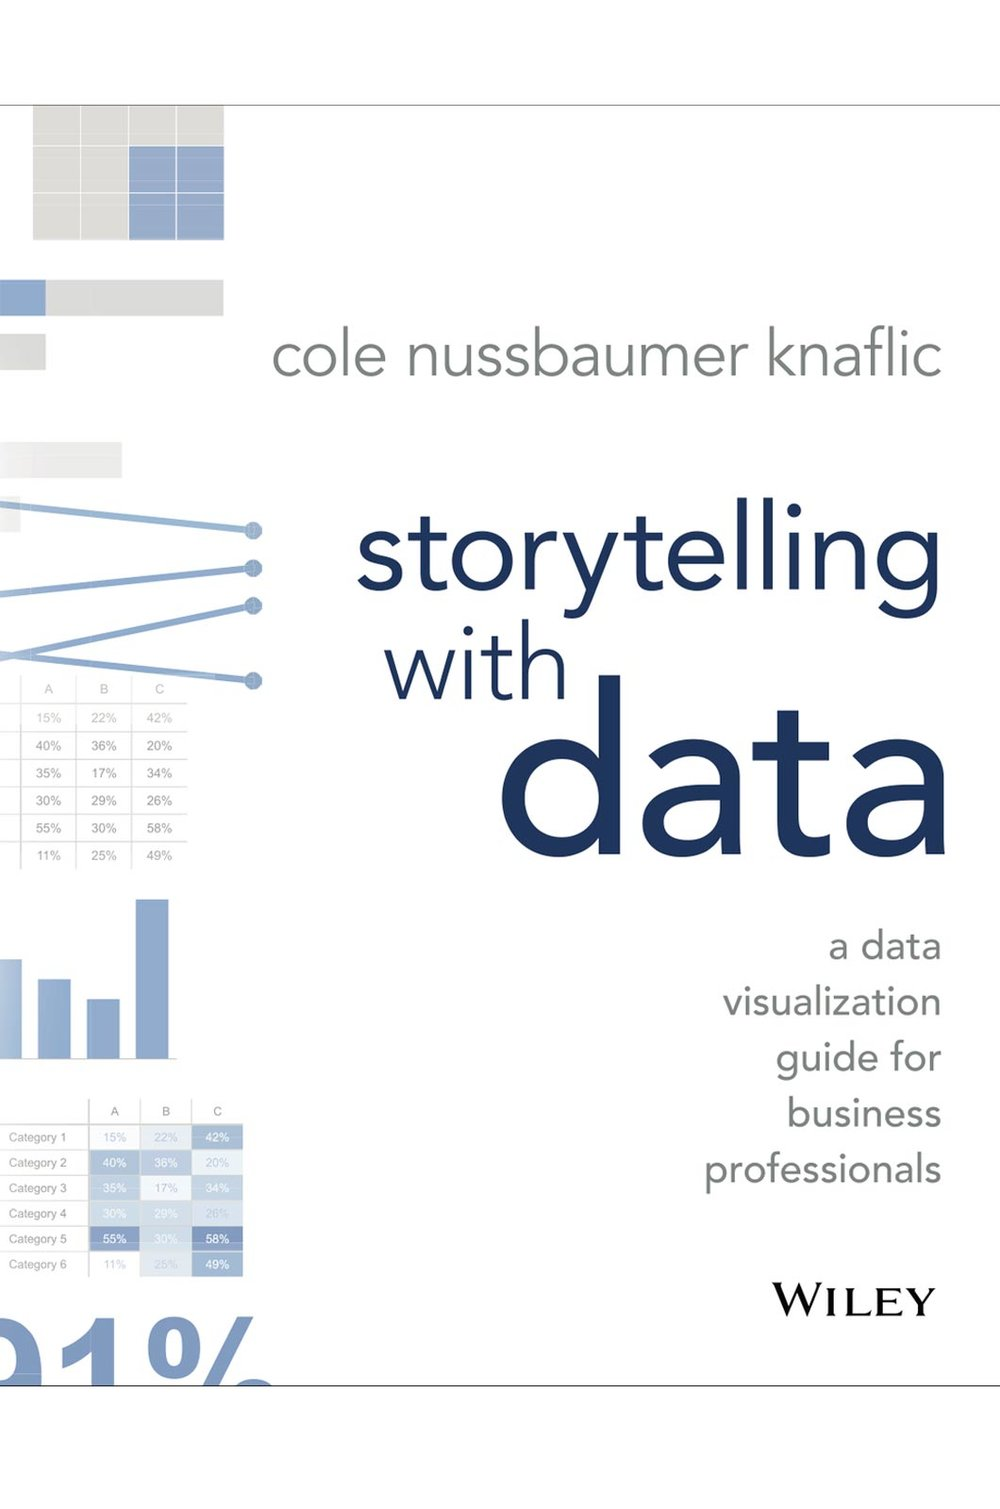 storytelling-with-data.jpg